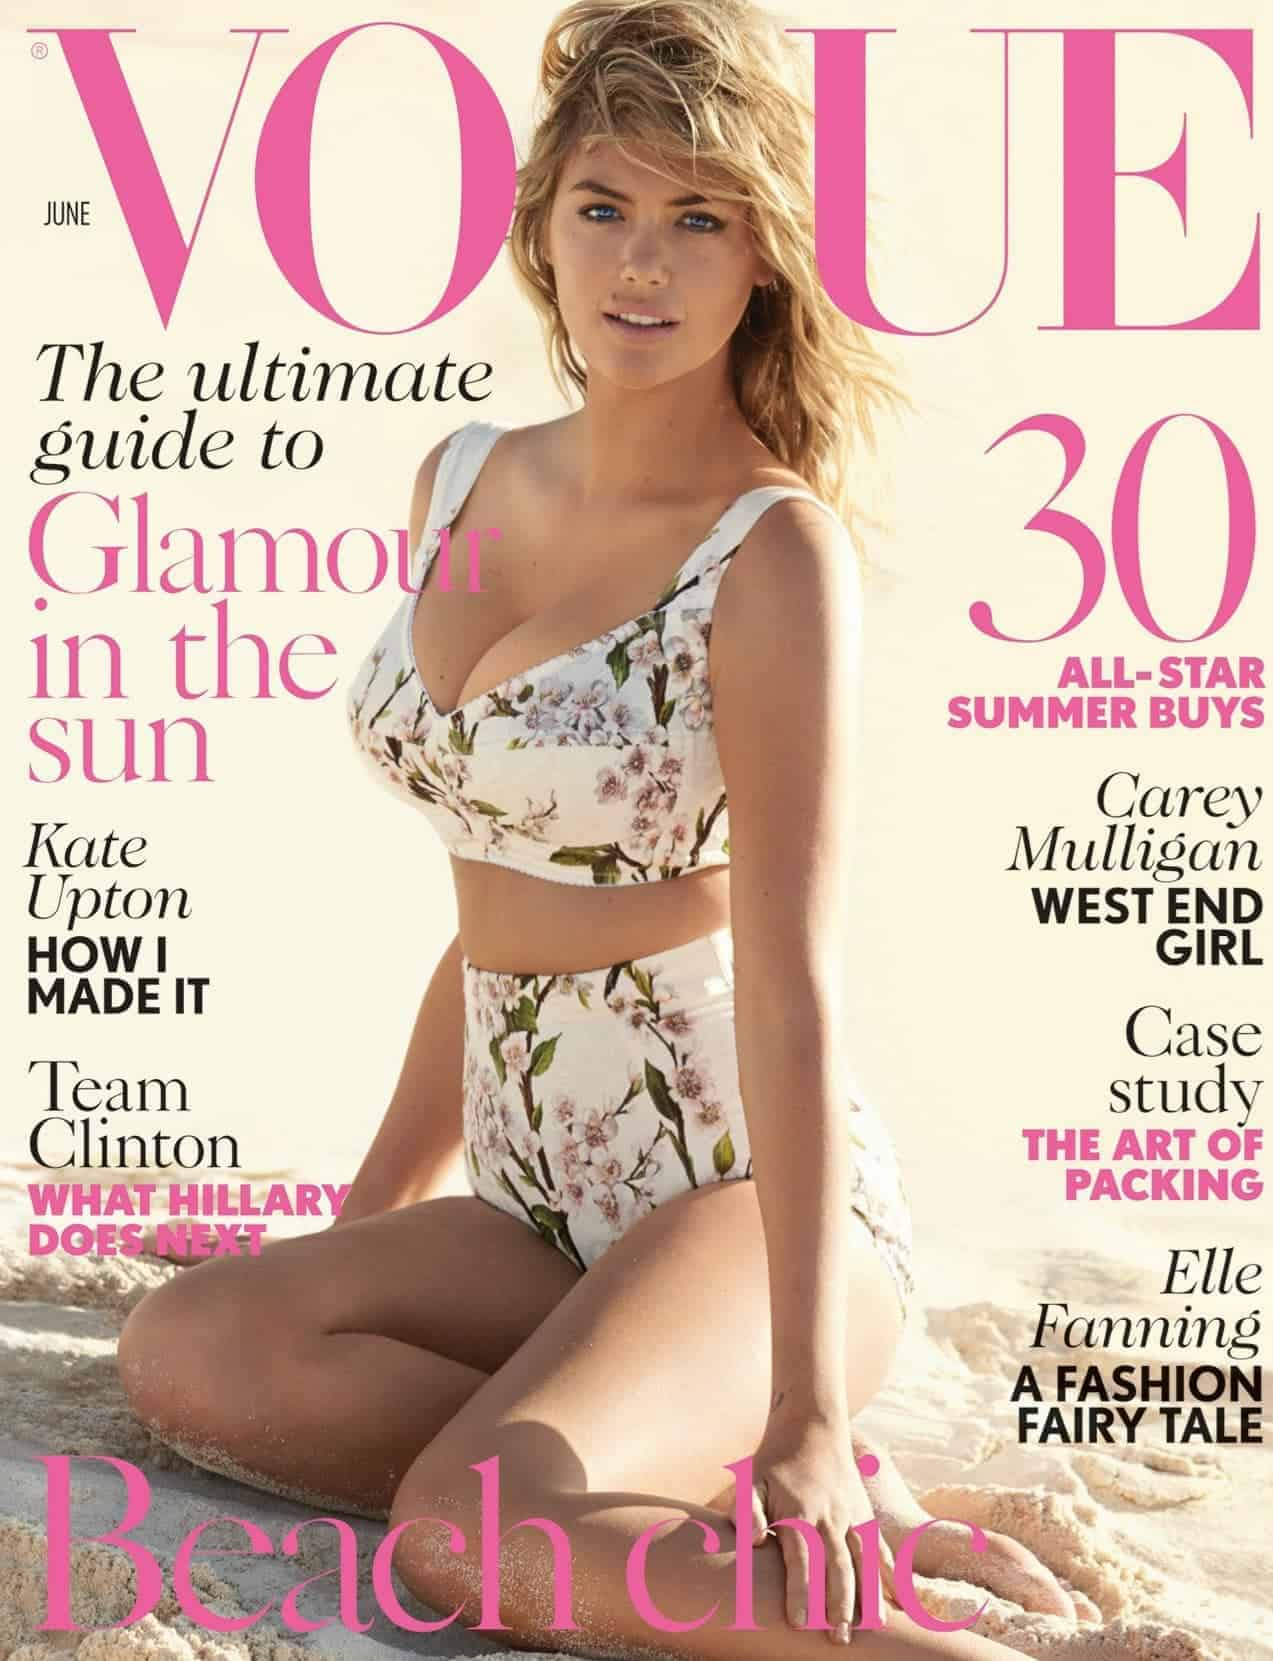 Kate Upton covers Vogue's June issue, FashionBite